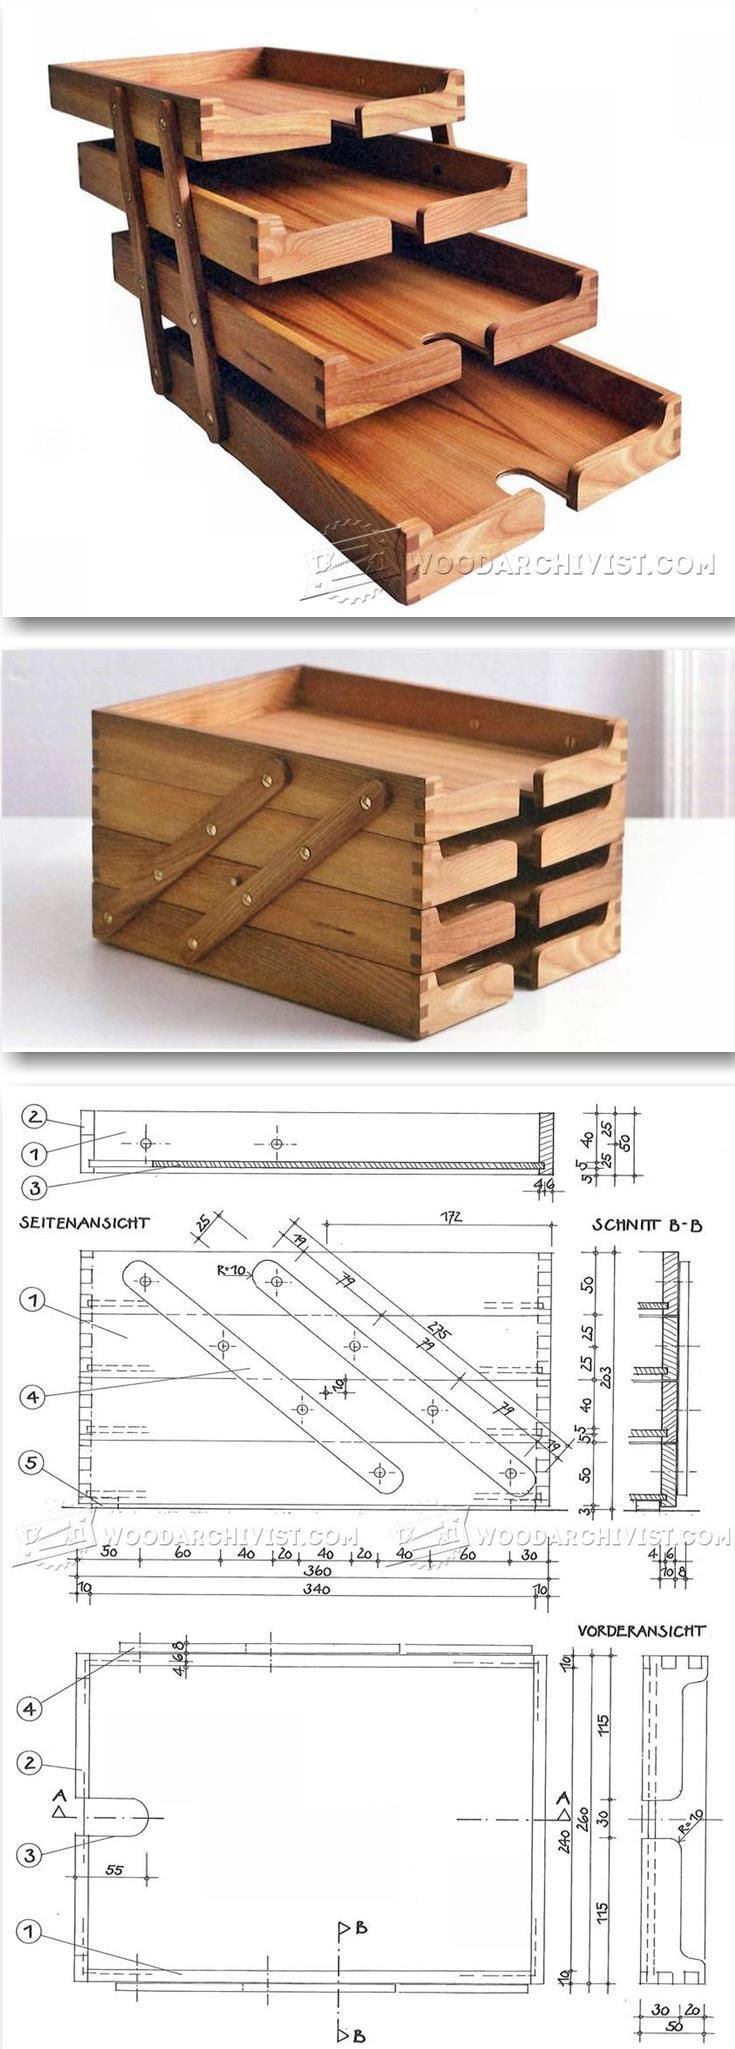 25+ Unique Kids Woodworking Projects Ideas On Pinterest